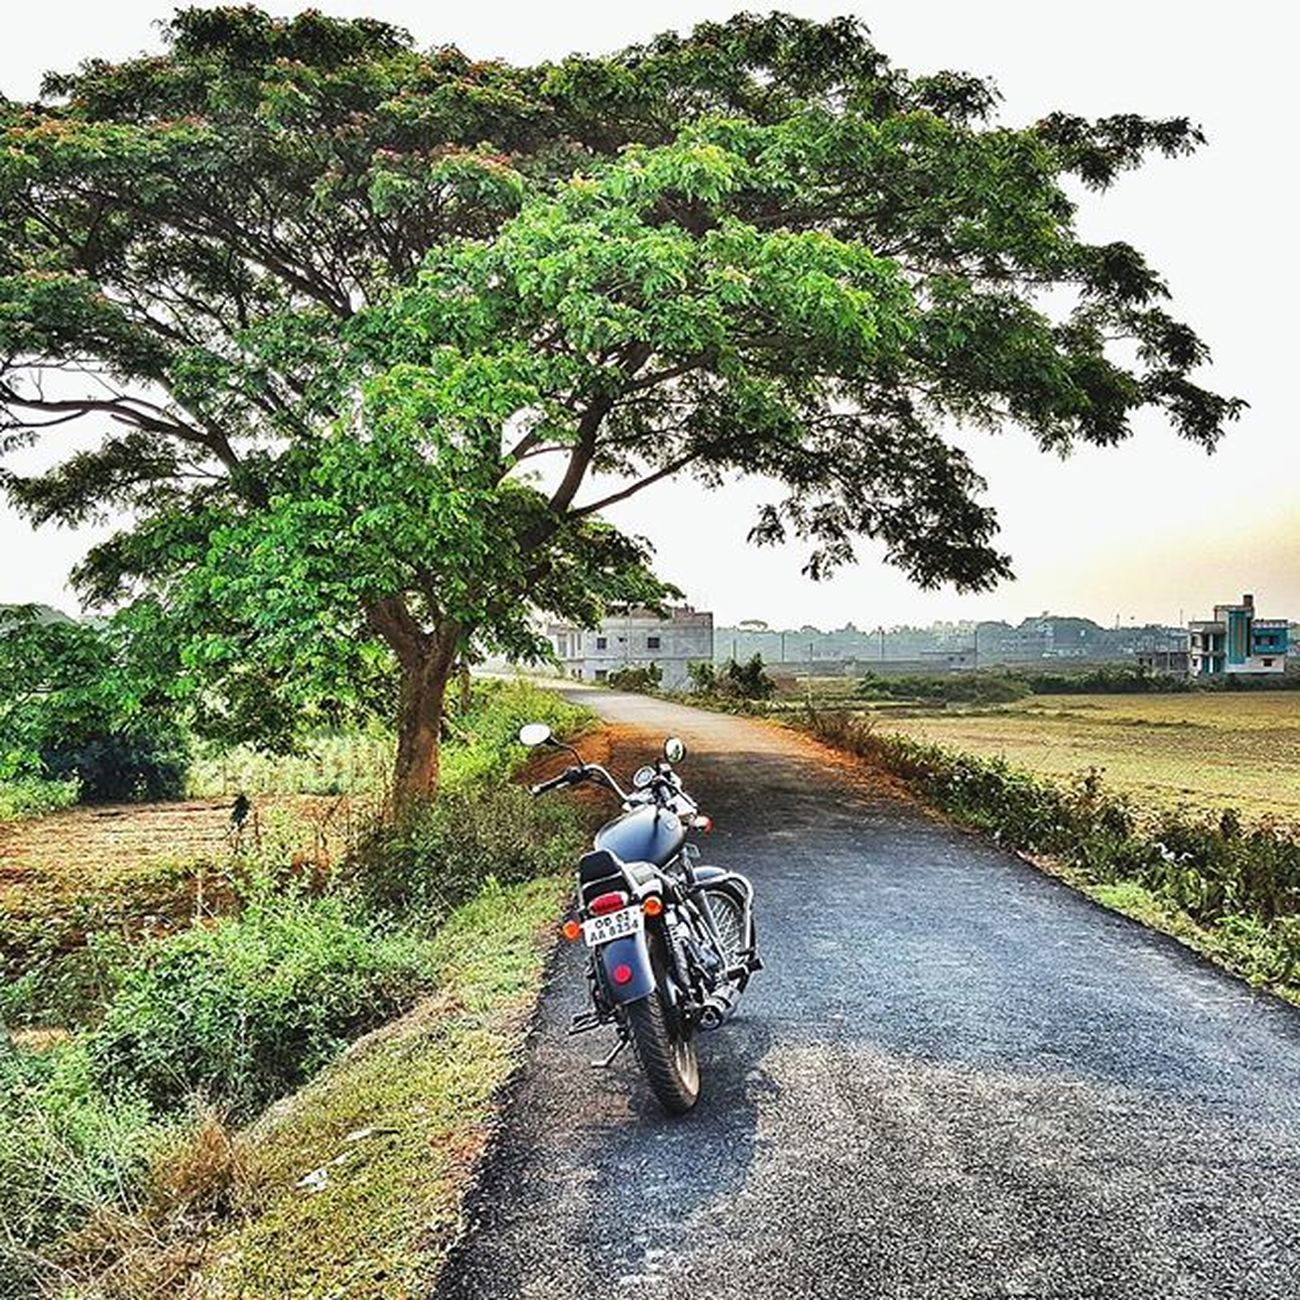 The roads are always there for us to find and explore :) Win SmallJoys Royalenfieldbeasts SundayMorningRide Thunderbird Travel Samsung S6 Mobilephotography